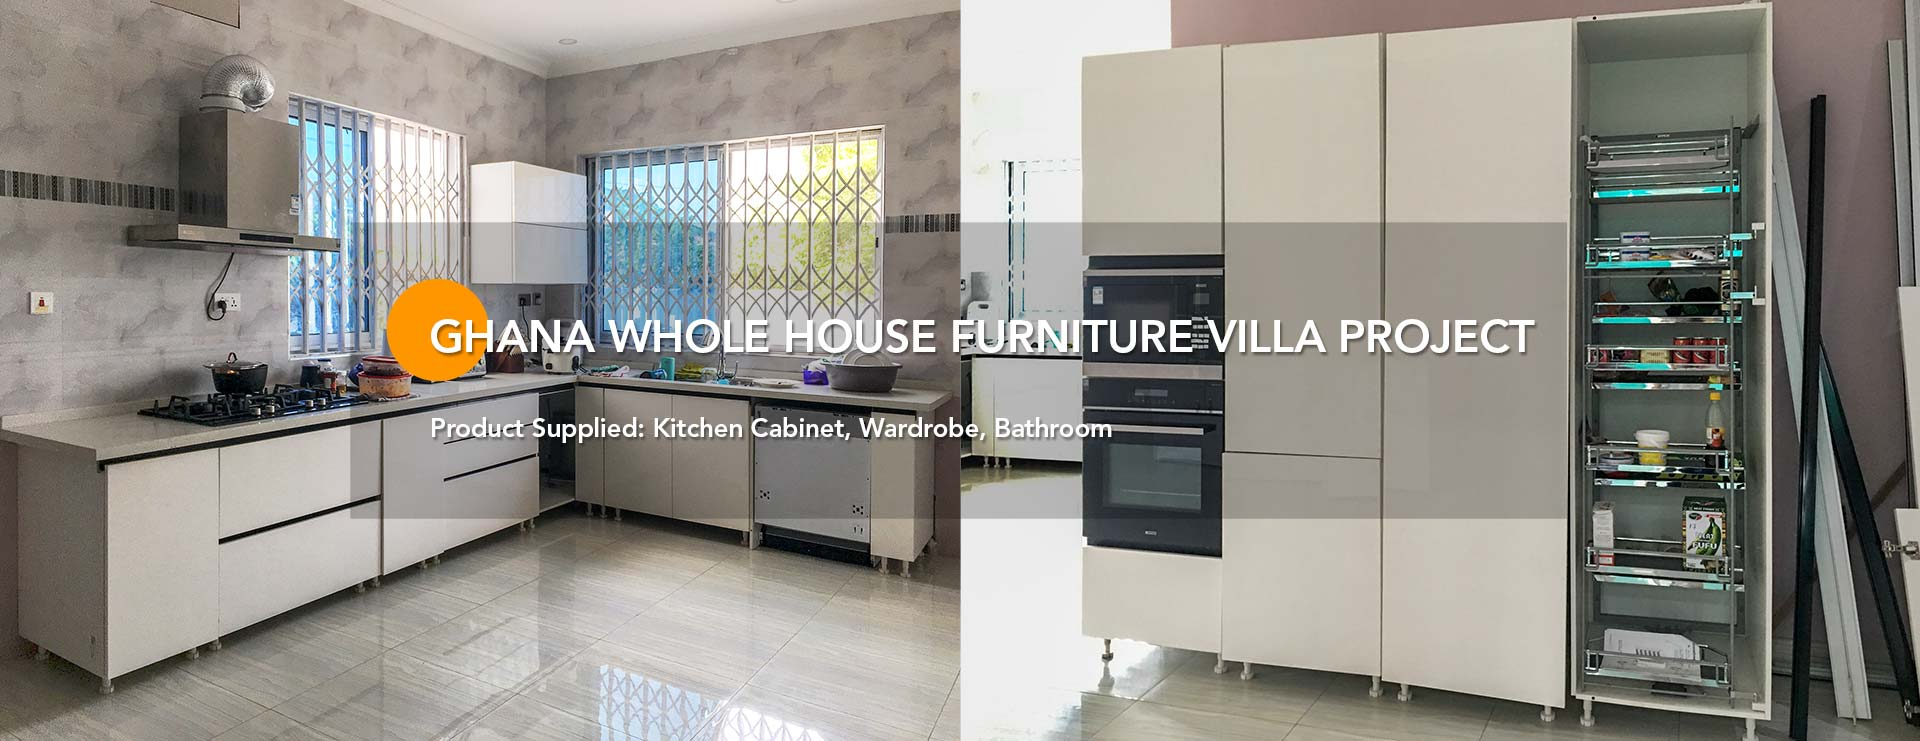 Ghana-Whole-House-Furniture-Villa-Project (3)